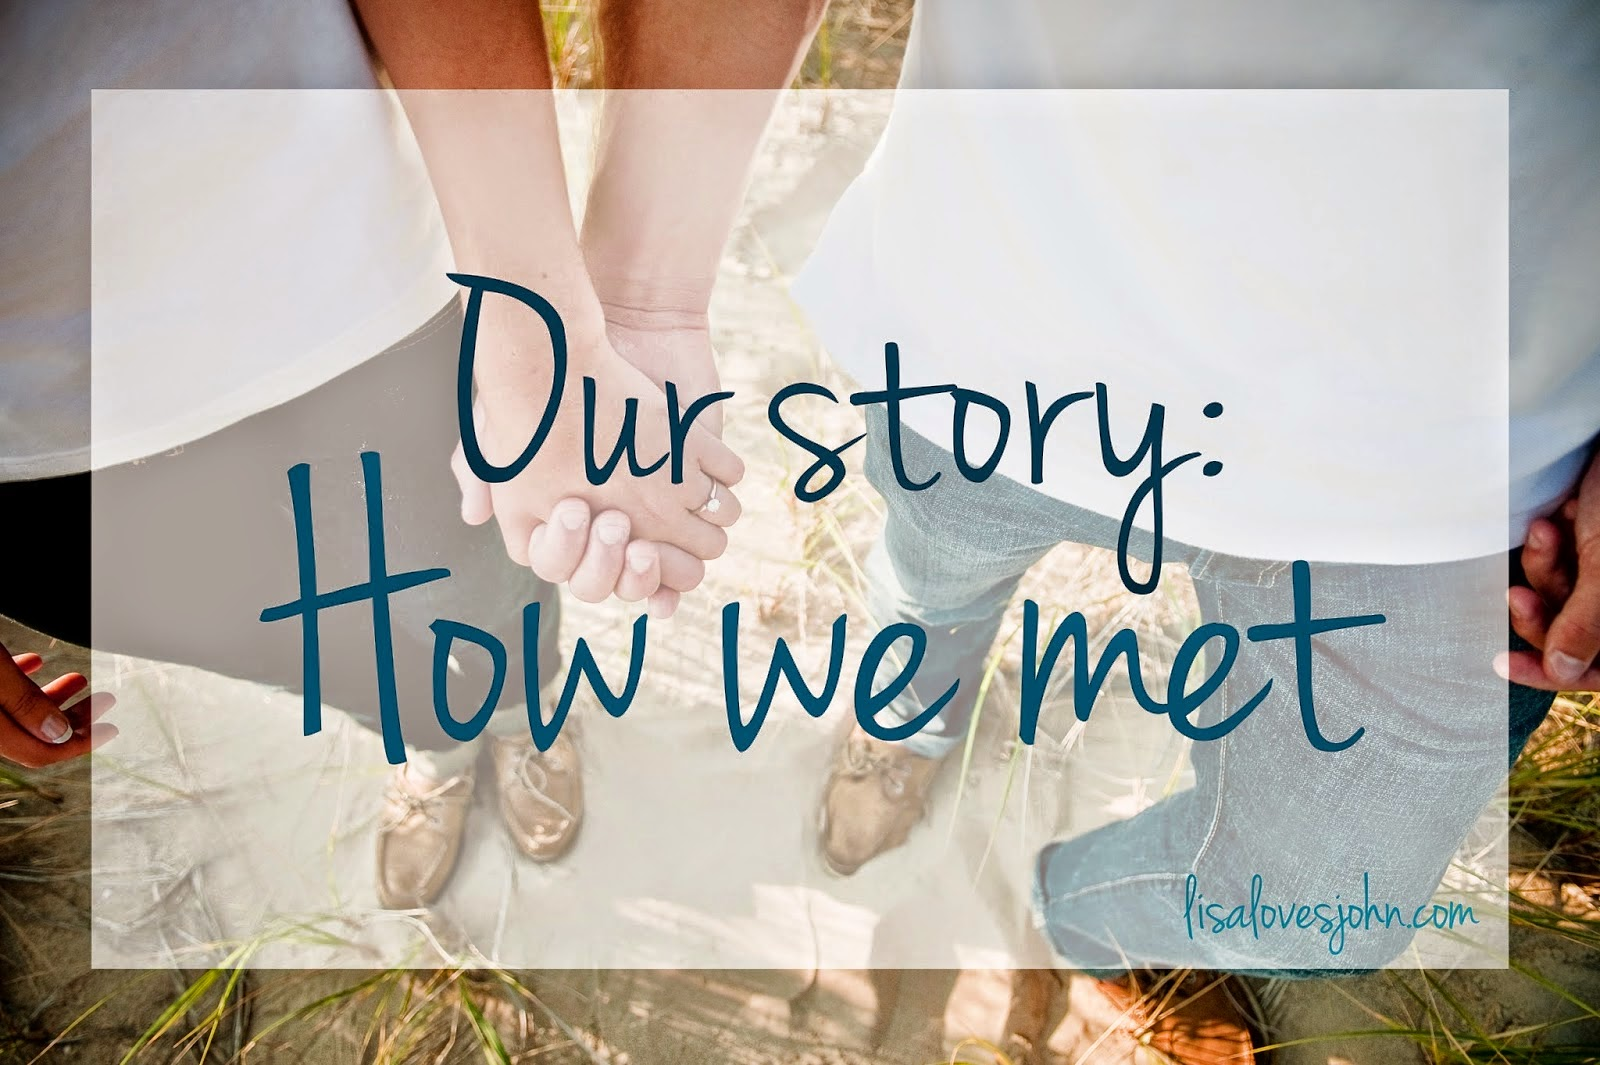 http://www.lisalovesjohn.com/2014/06/our-story-how-we-met.html